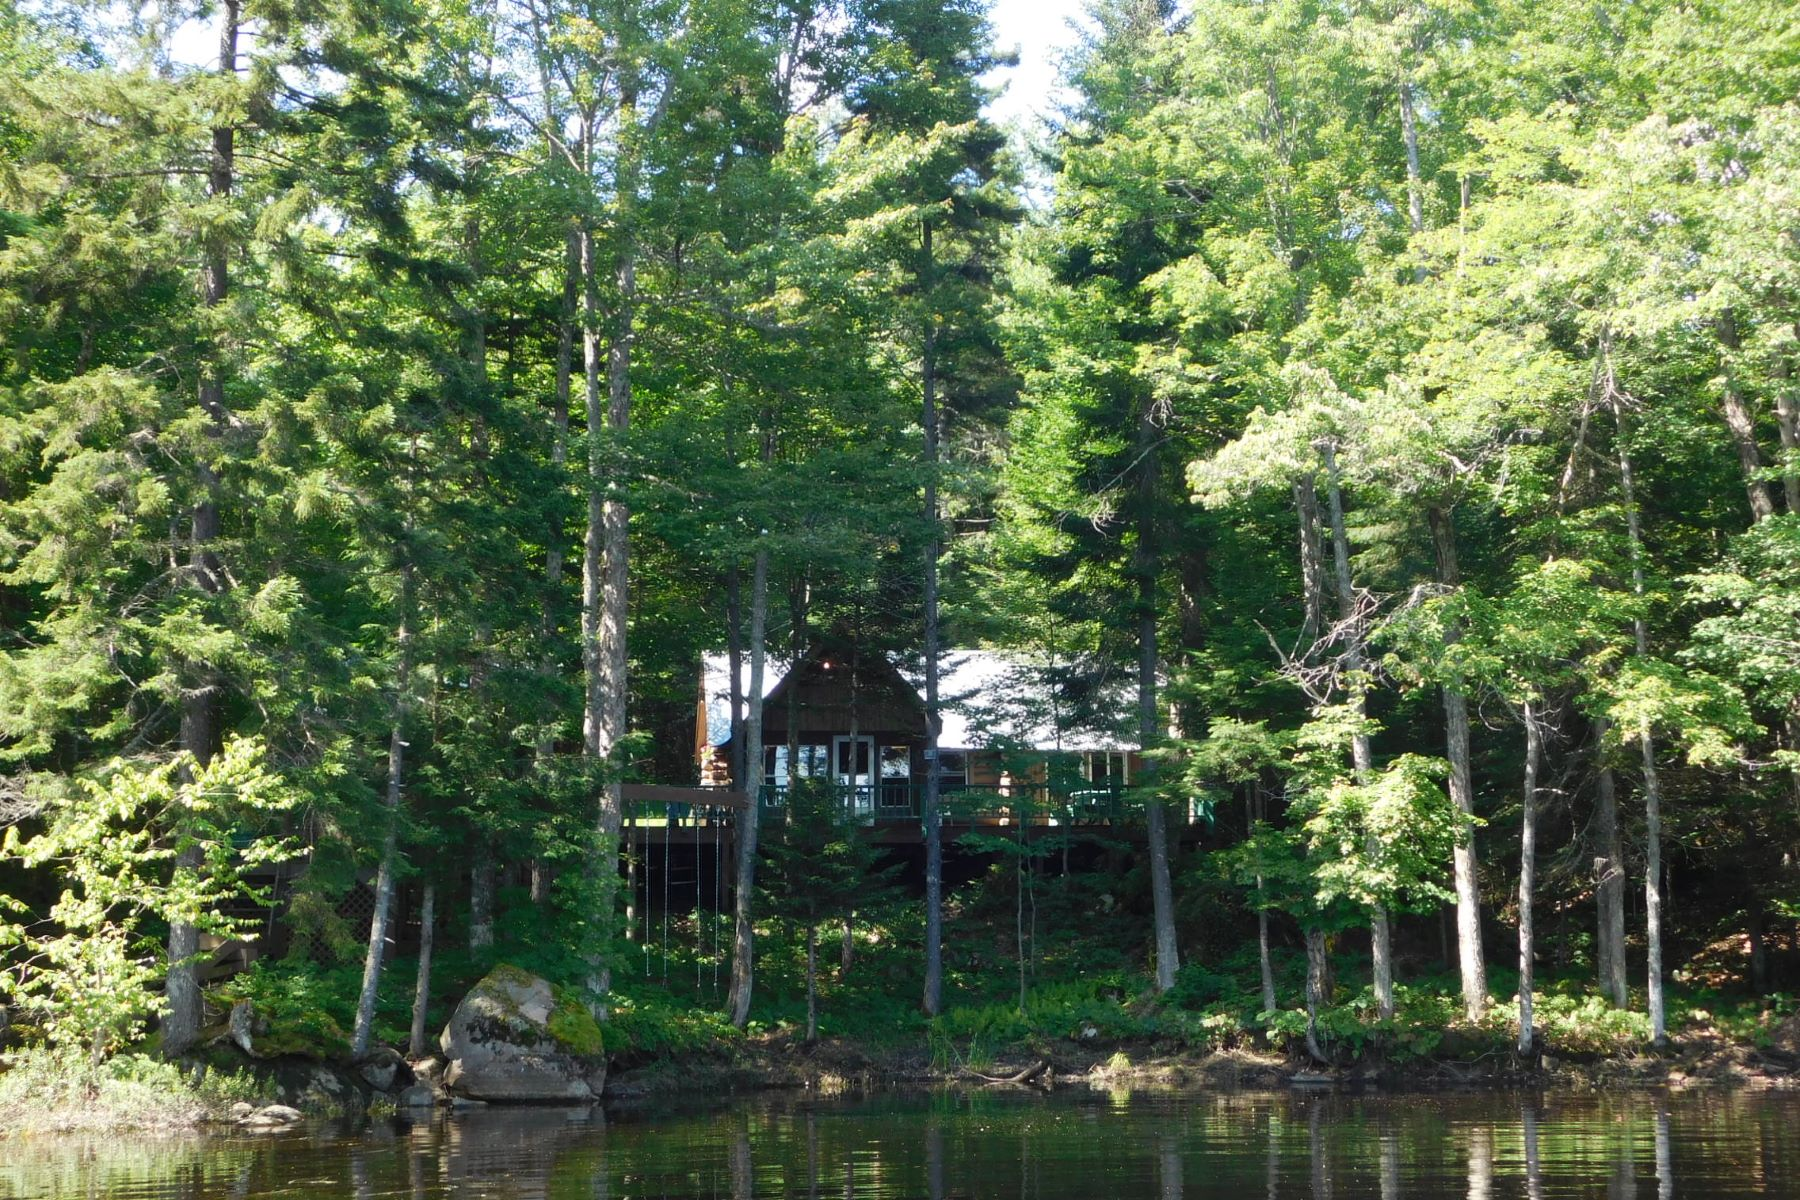 Single Family Home for Sale at Secluded Cabin and 32 acres with unparalleled views of Stillwater Reservoir 3960 Big Moose Rd Big Moose, New York 13331 United States